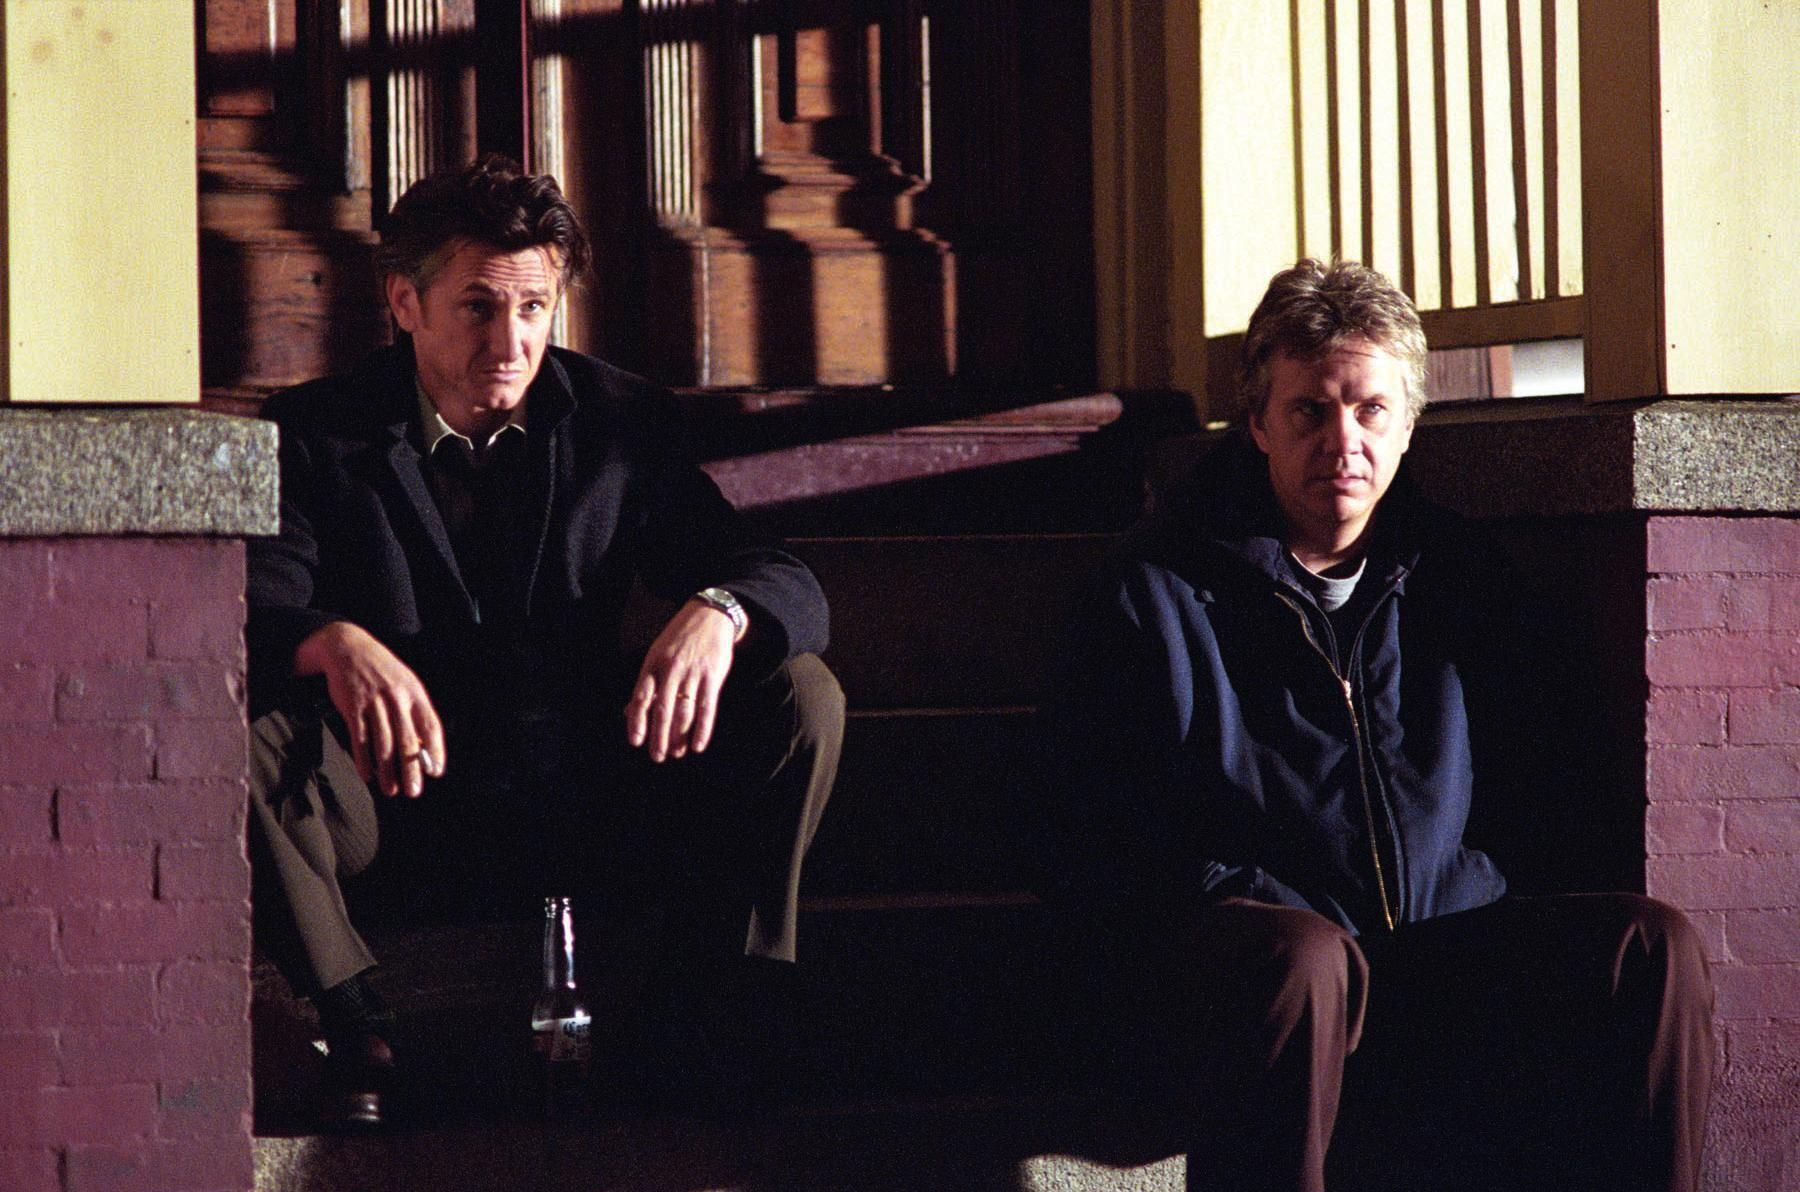 Mejor peli del siglo XXI 1415902834_still-of-tim-robbins-and-sean-penn-in-mystic-river-2003-large-picture